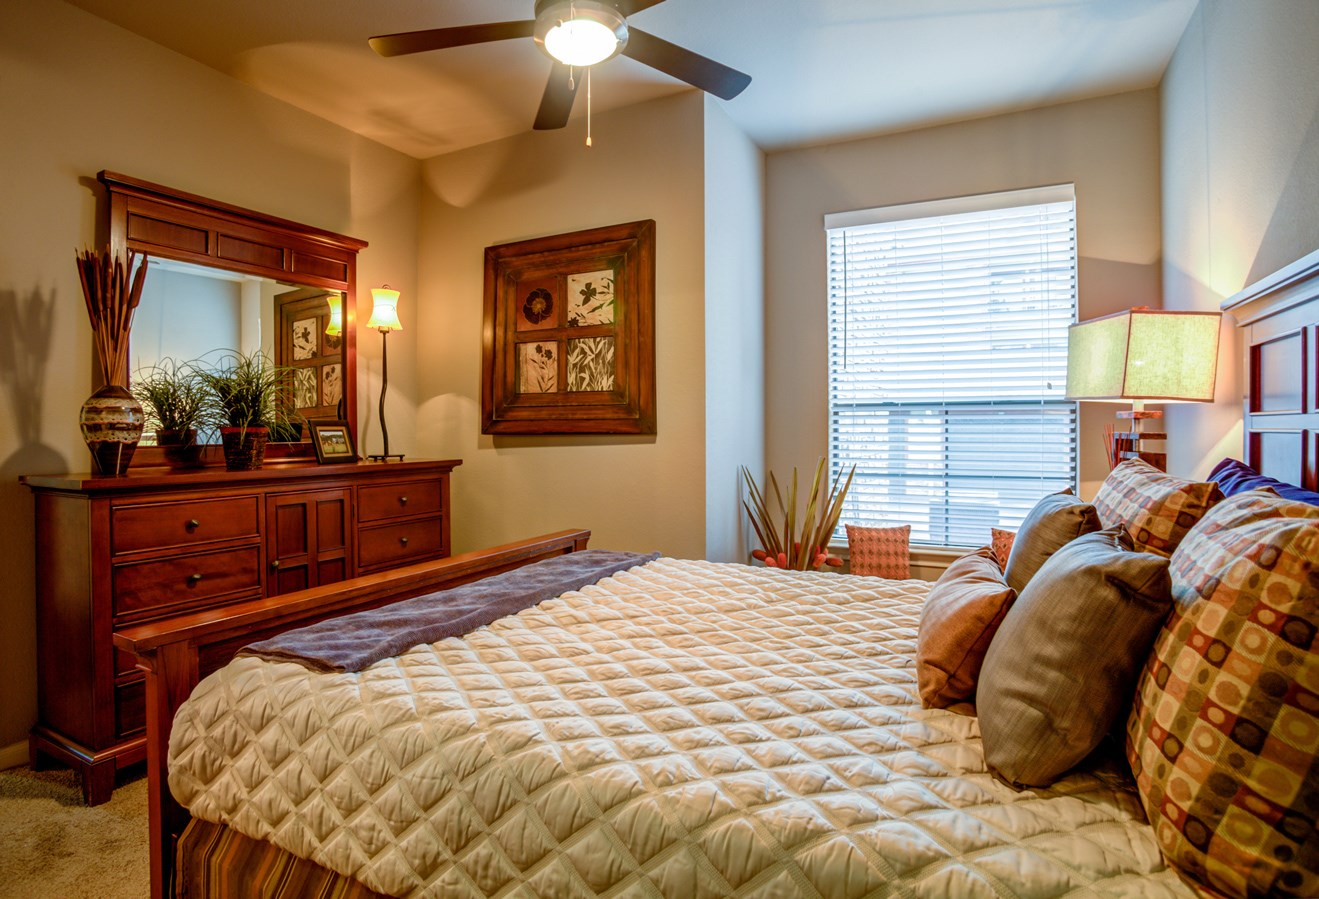 Bedroom at The Ranch at Pinnacle Point Apartments in Rogers, AR